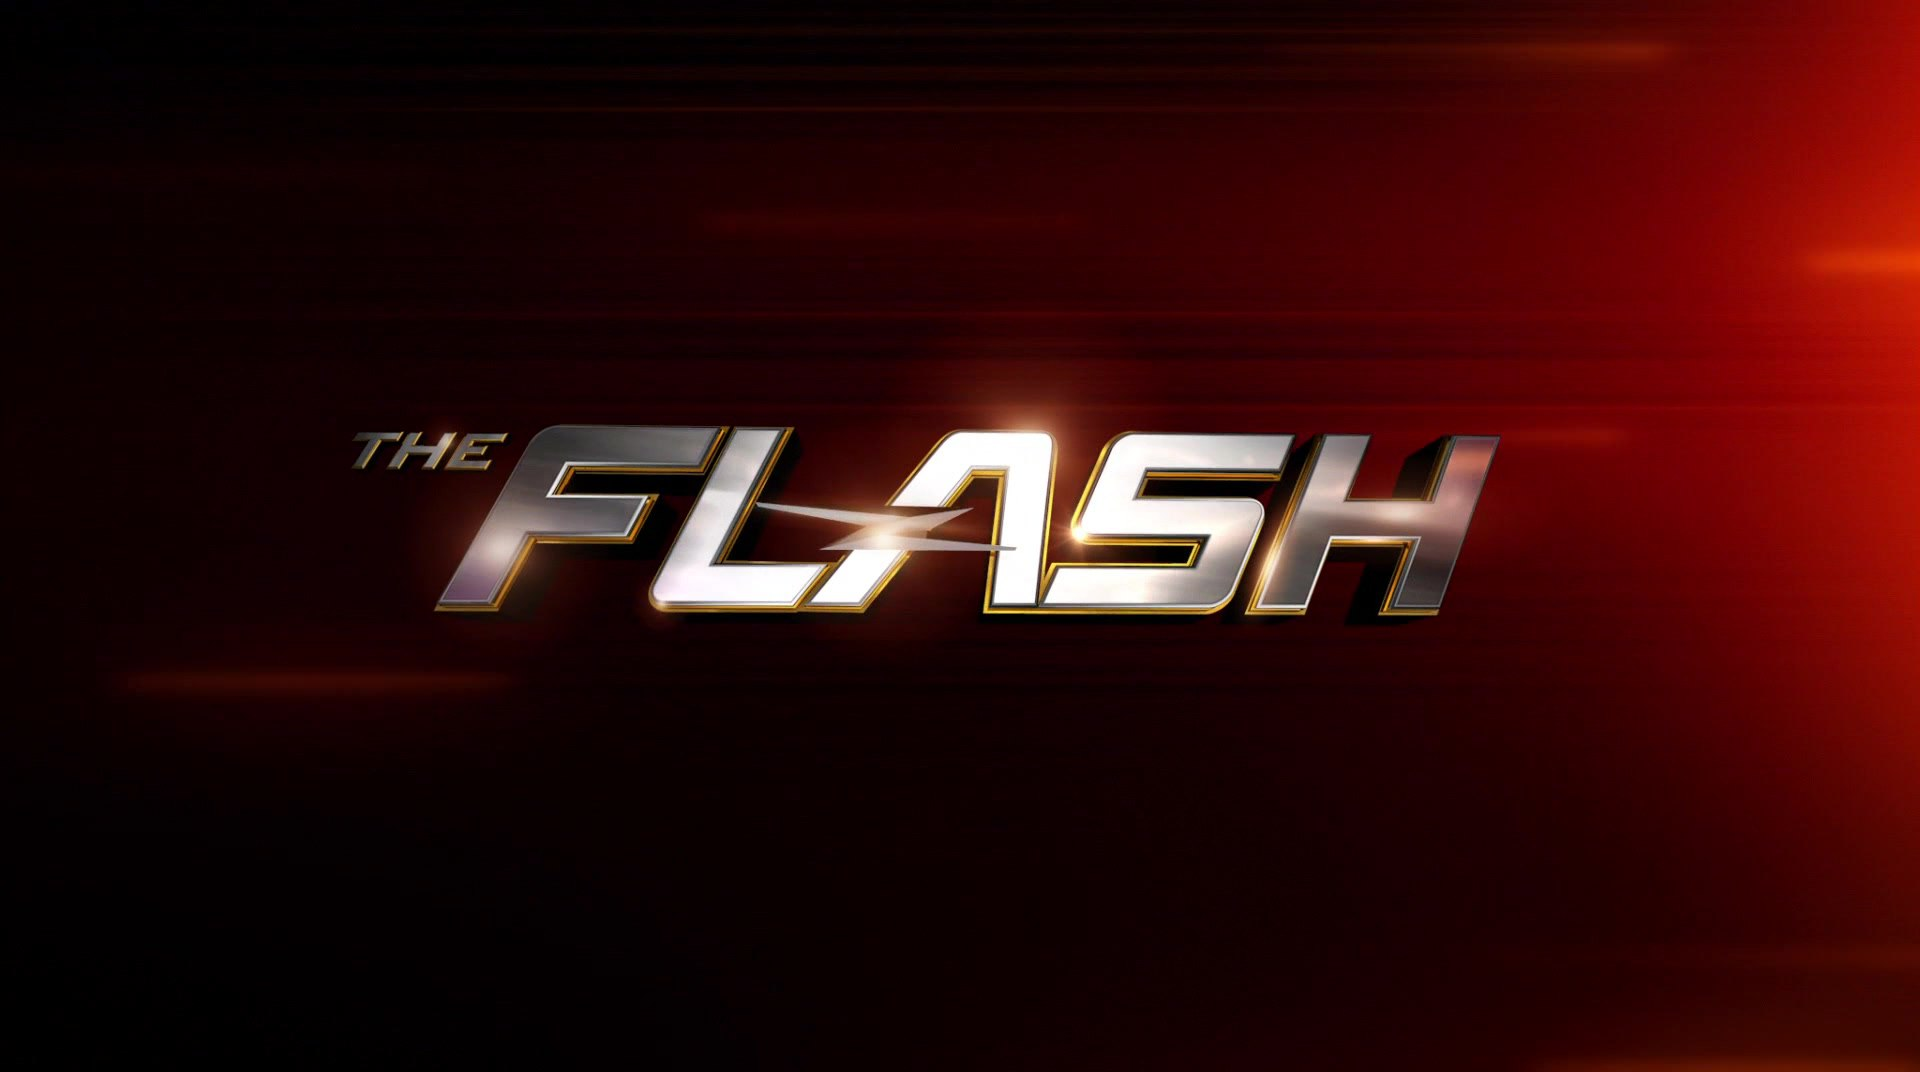 The Flash (2014 TV Series) Episode: What's Past Is Prologue